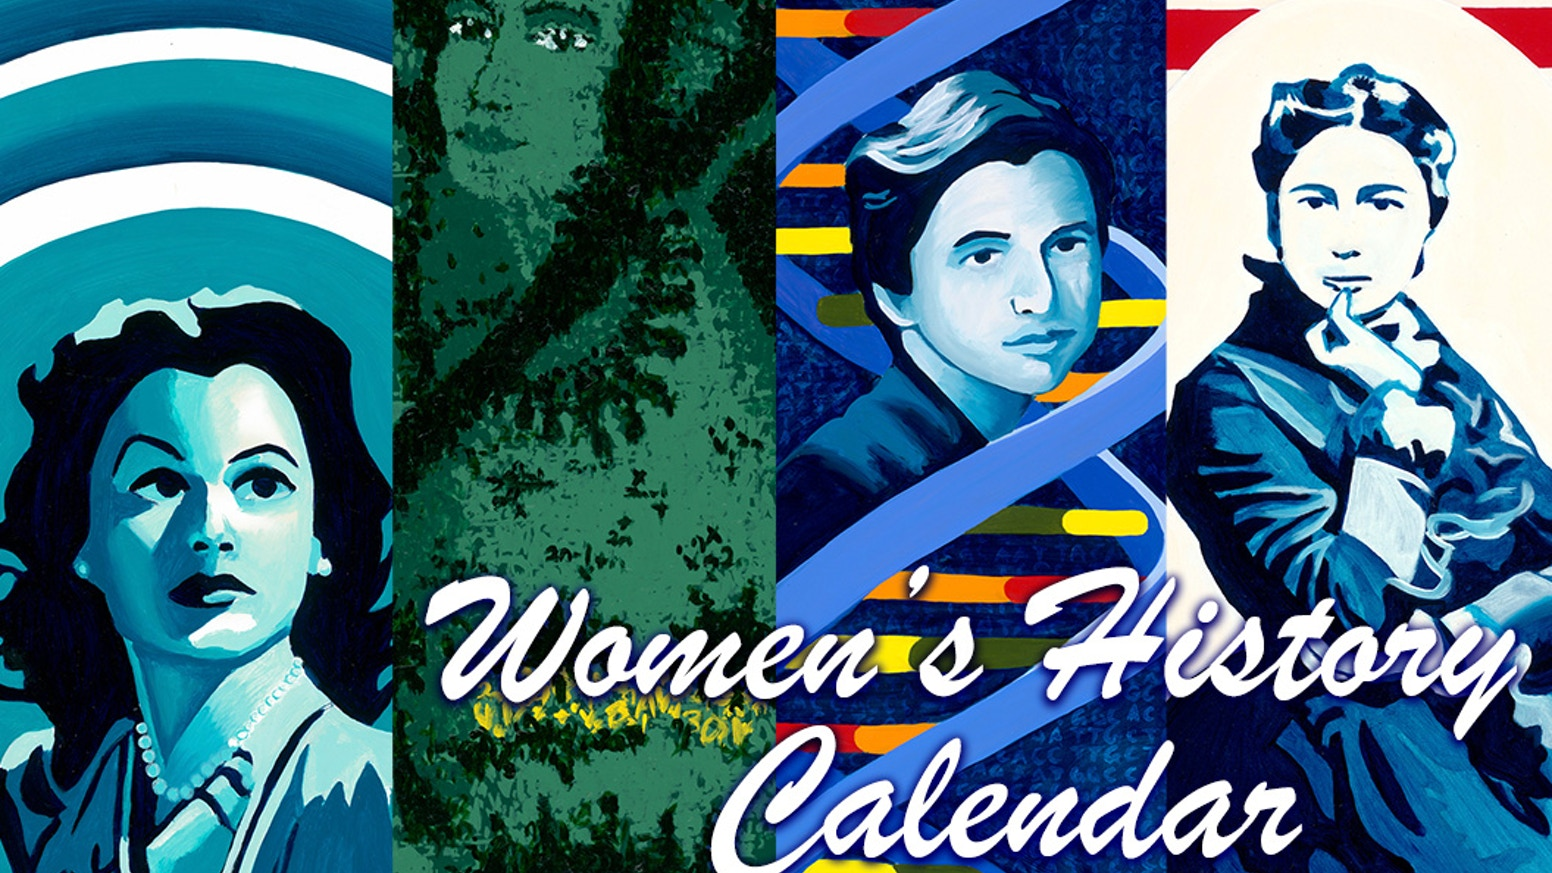 I am creating a women's history calendar full of events, dates, and facts about all your favorite ladies throughout history.